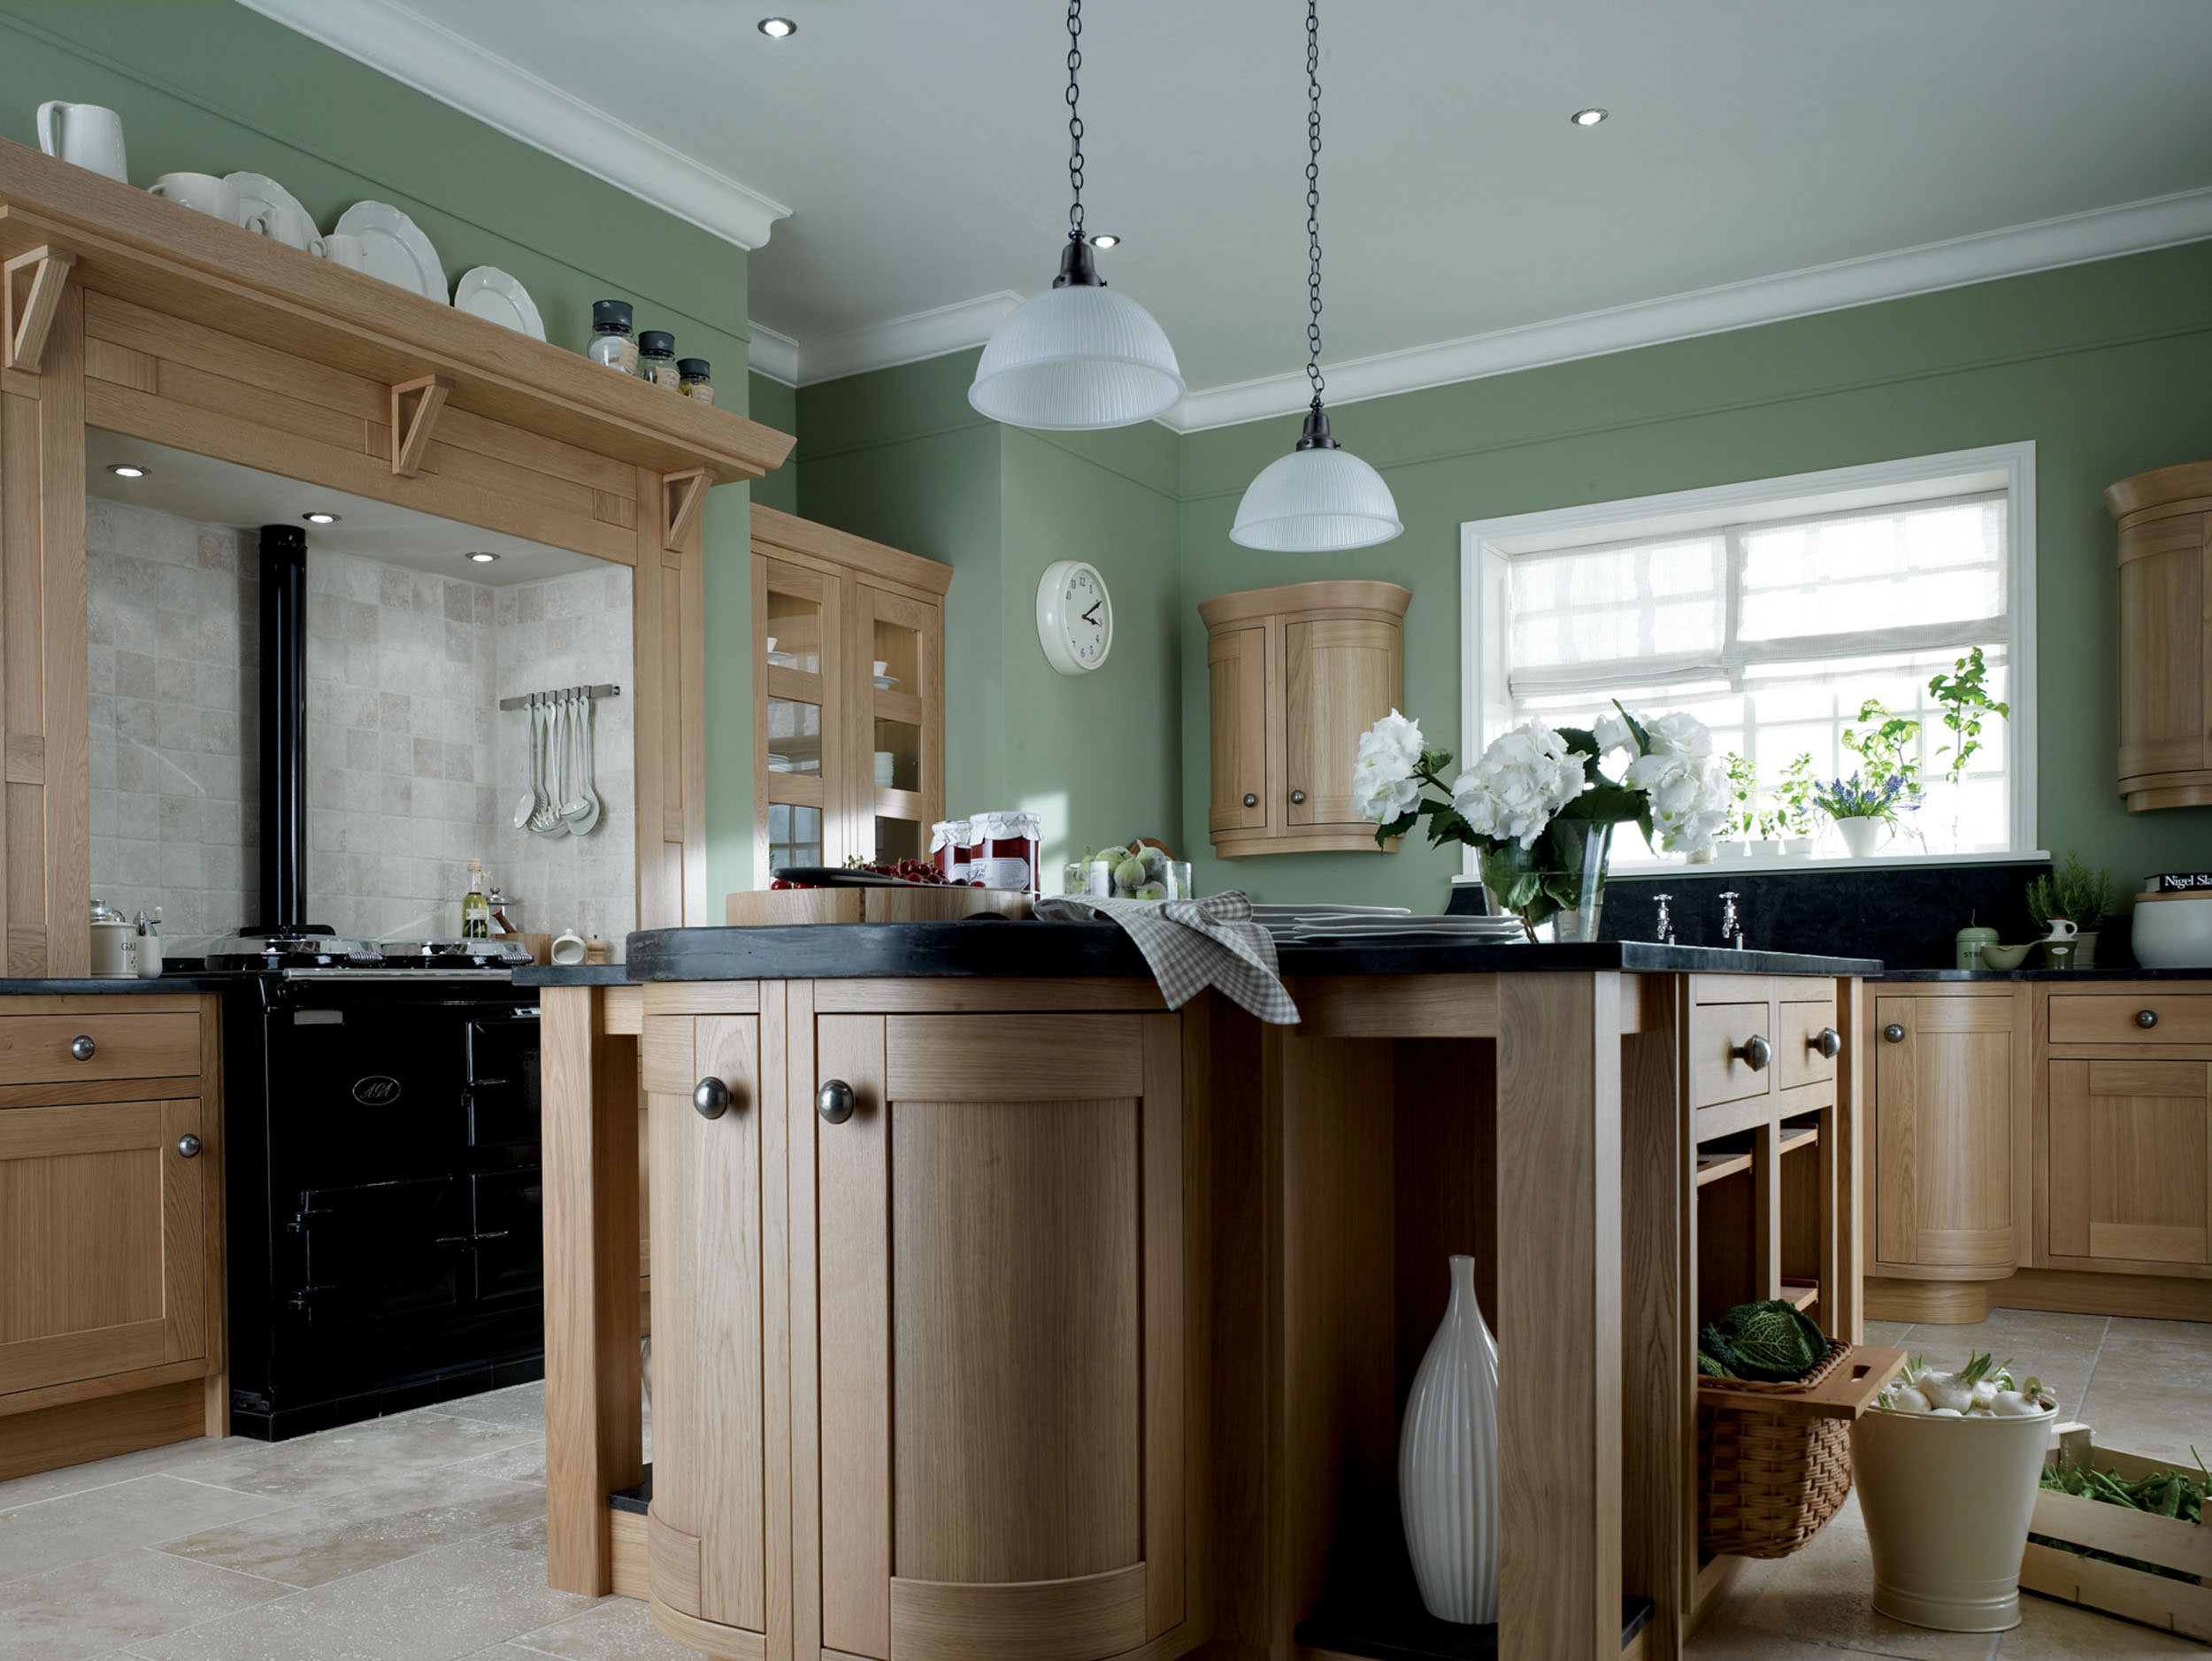 Good colors for kitchens homesfeed for Pictures suitable for kitchen walls